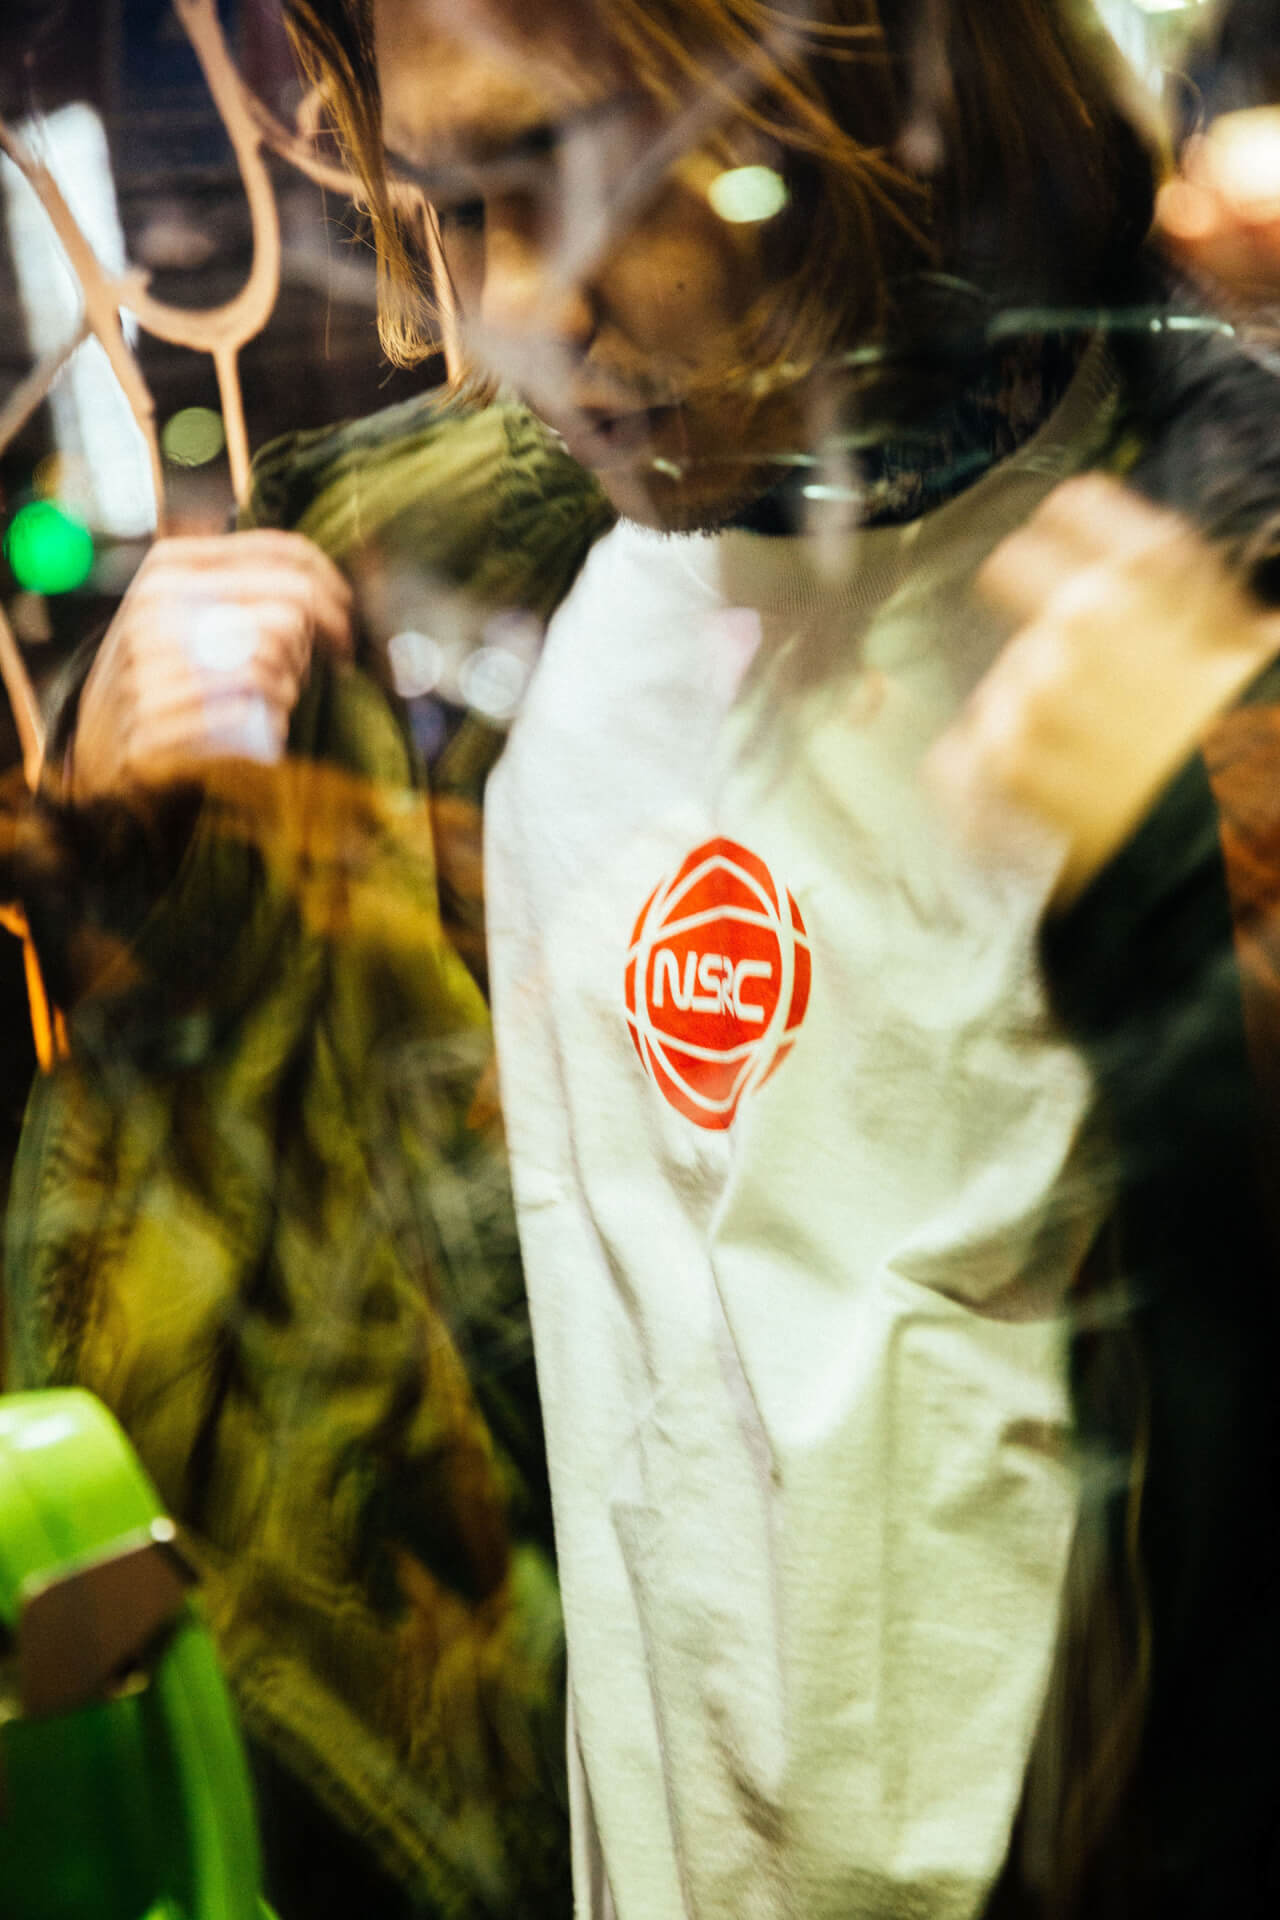 NSRC POP UP EVENT Supported by Qetic music1908228-nsrc-6